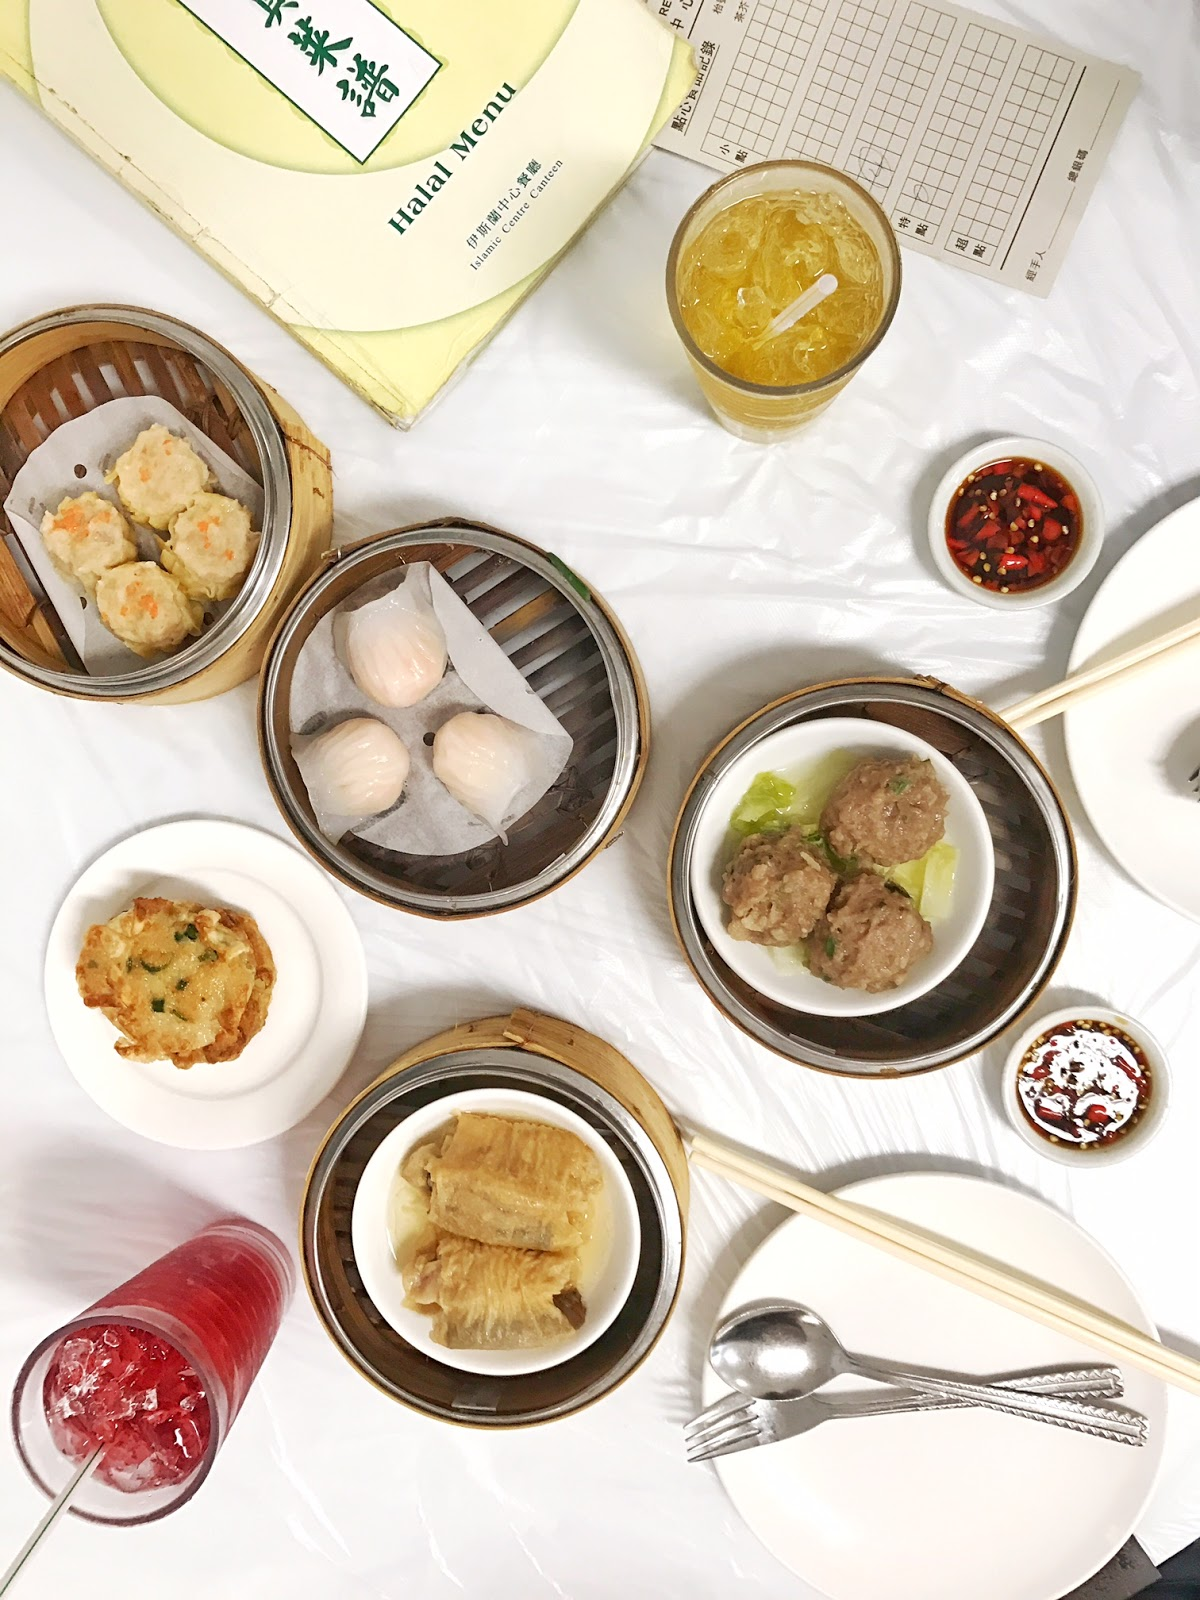 ANUARAANUAR: Hong Kong Halal Food Haven